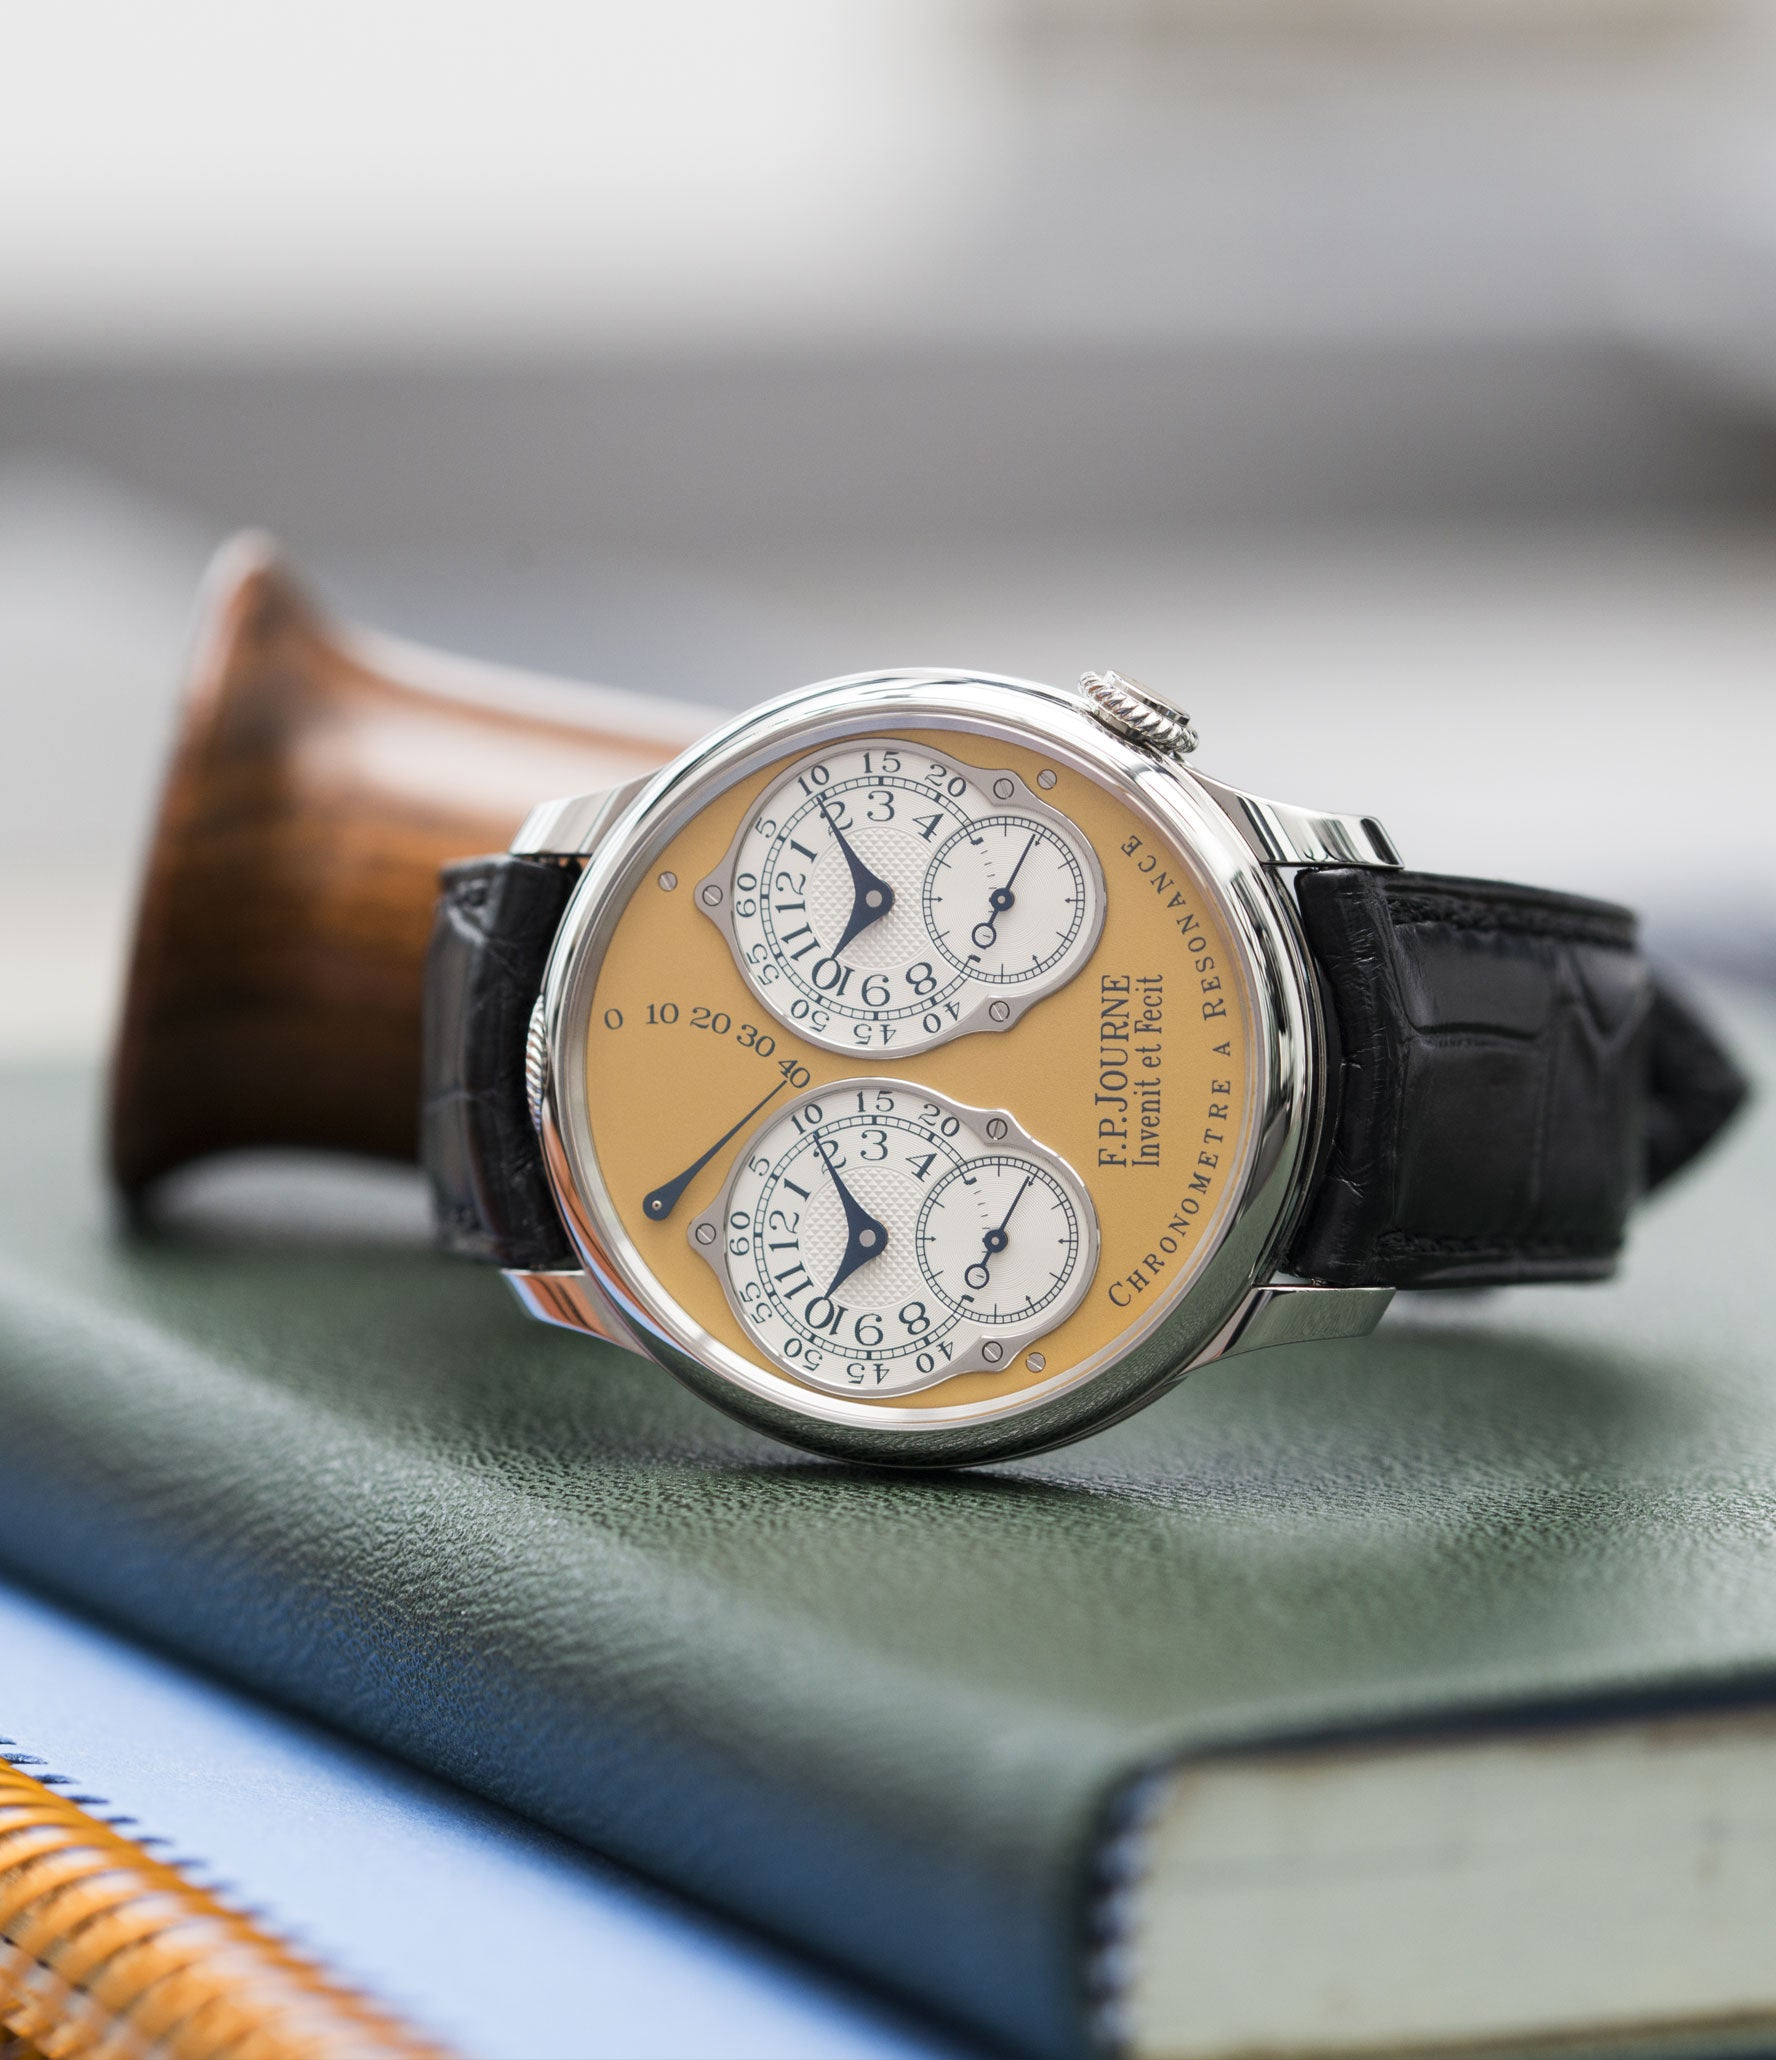 selling F. P. Journe Chronomètre à Résonance Steel 38 mm Limited Edition Set of 5 watches for sale online at A Collected Man London approved UK retailer independent watchmakers